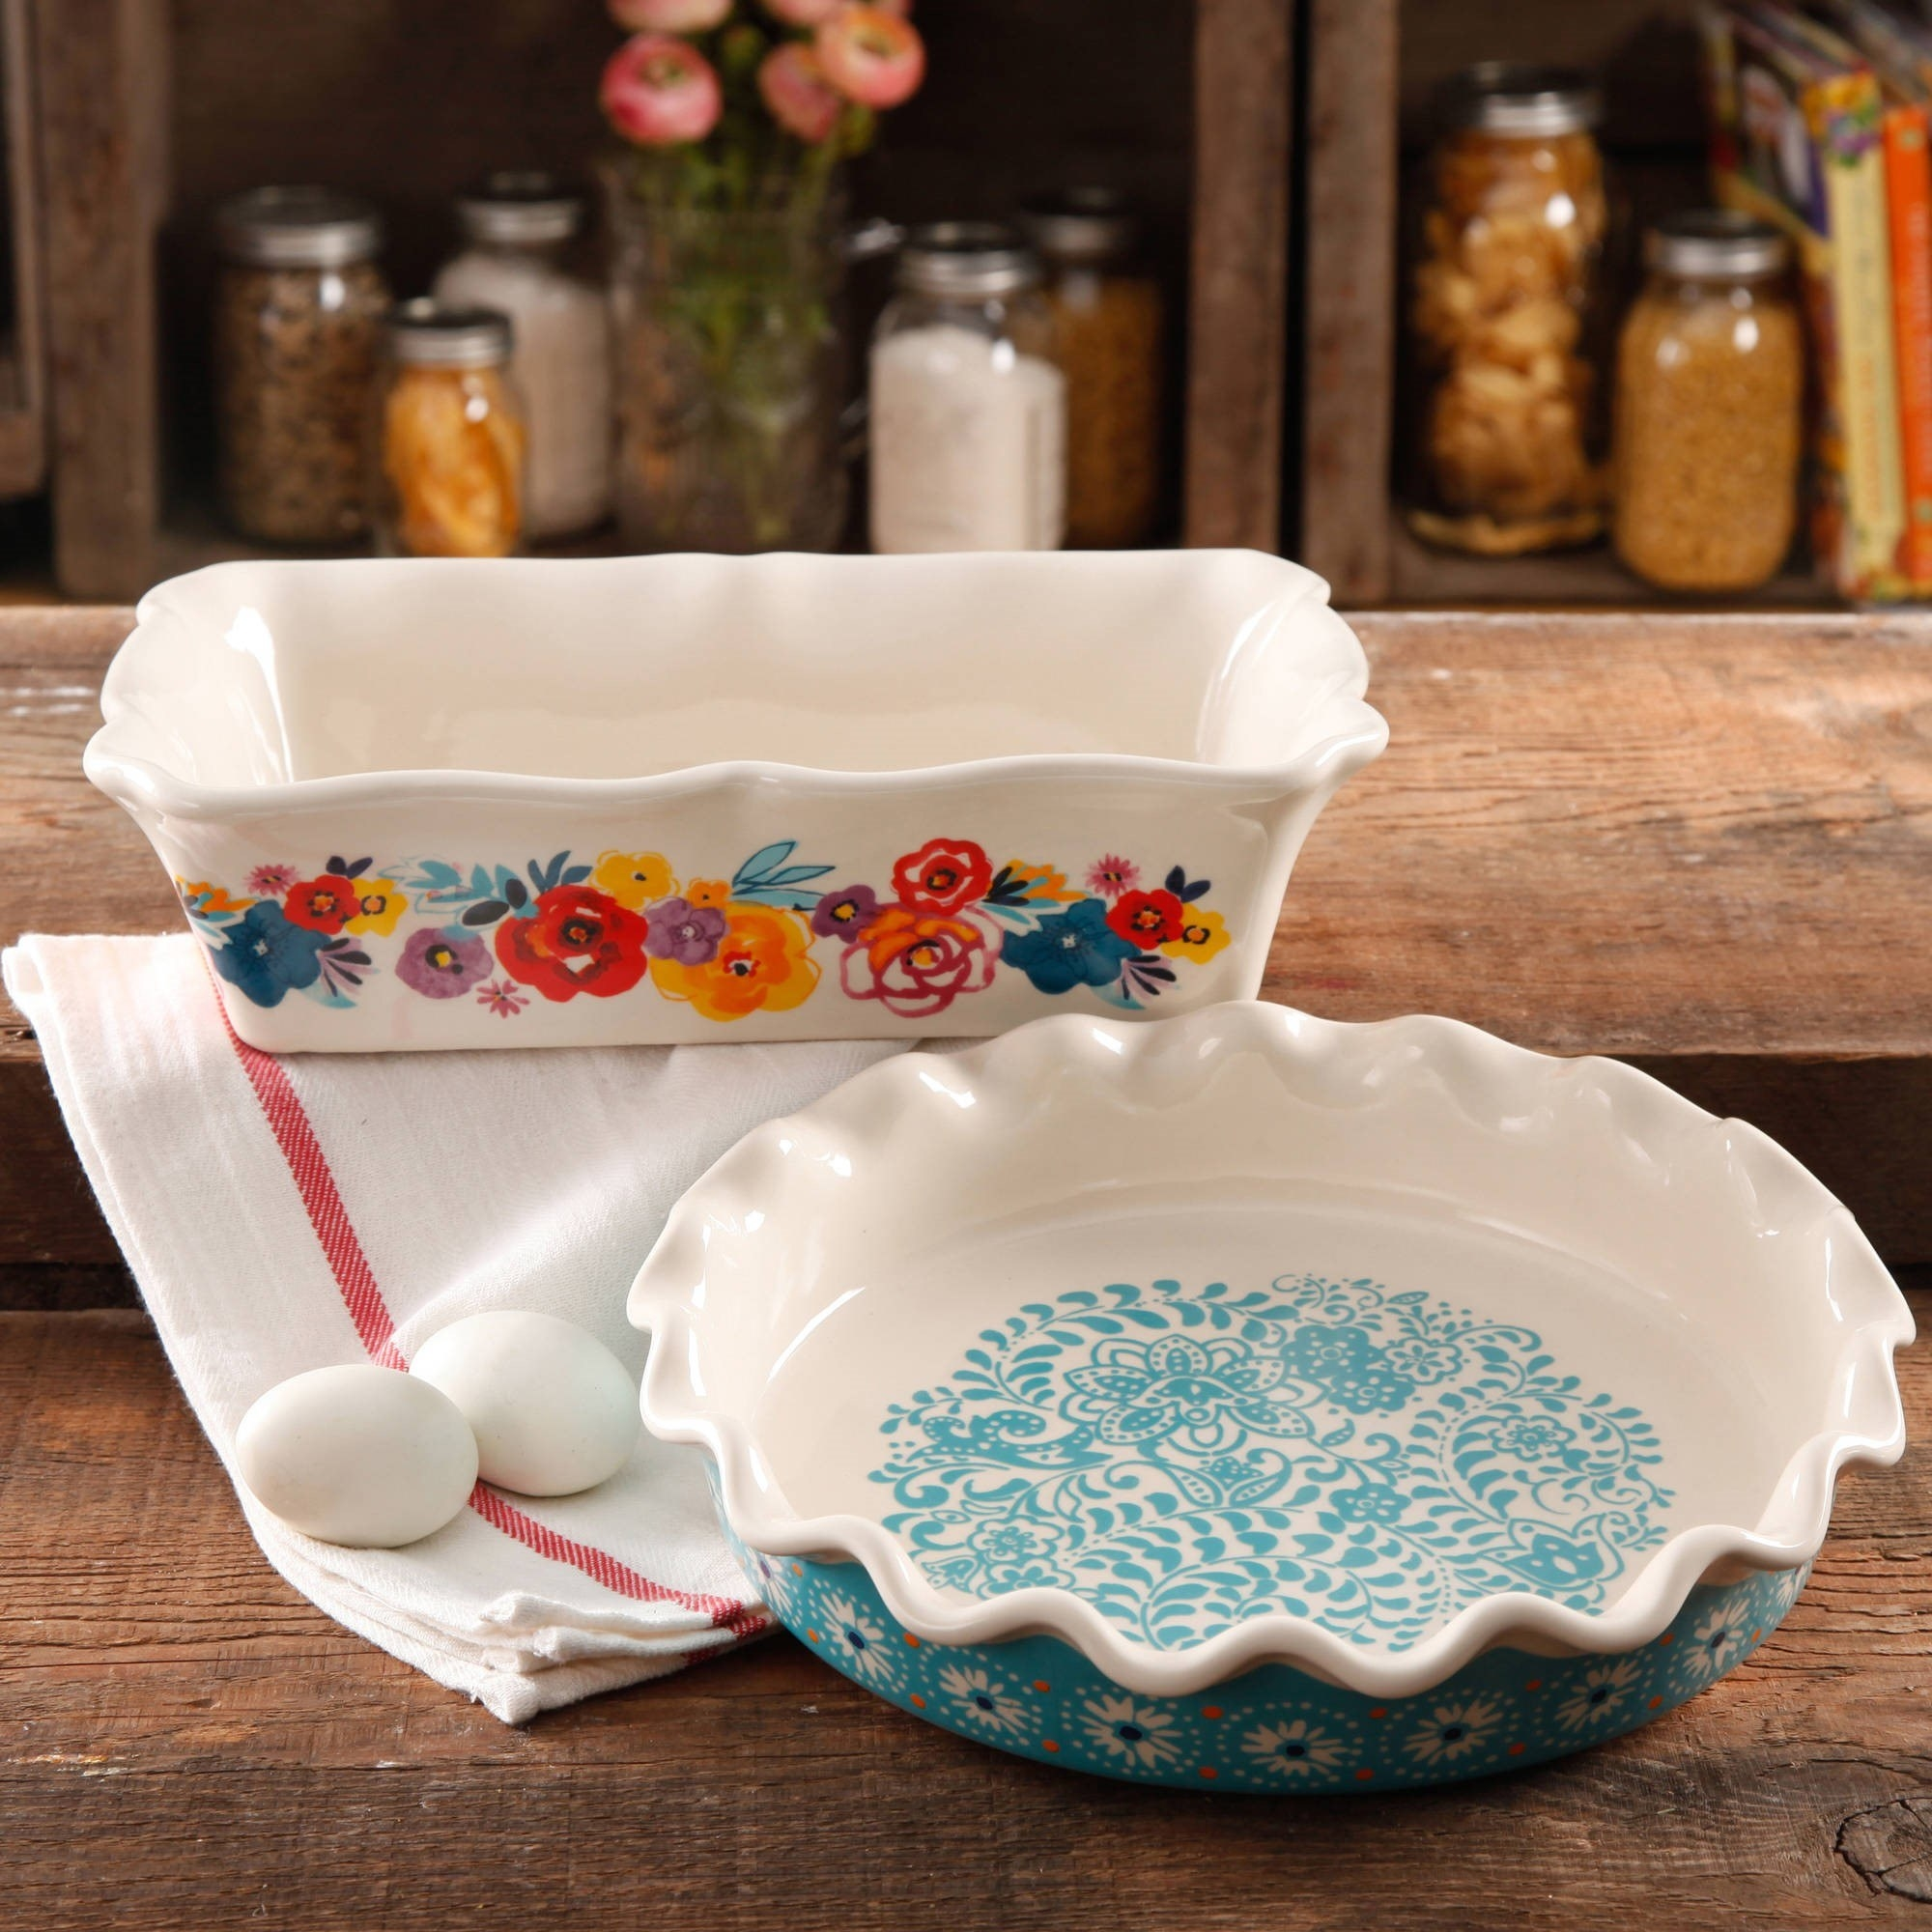 The pie plate and baking dish displayed in a rustic kitchen